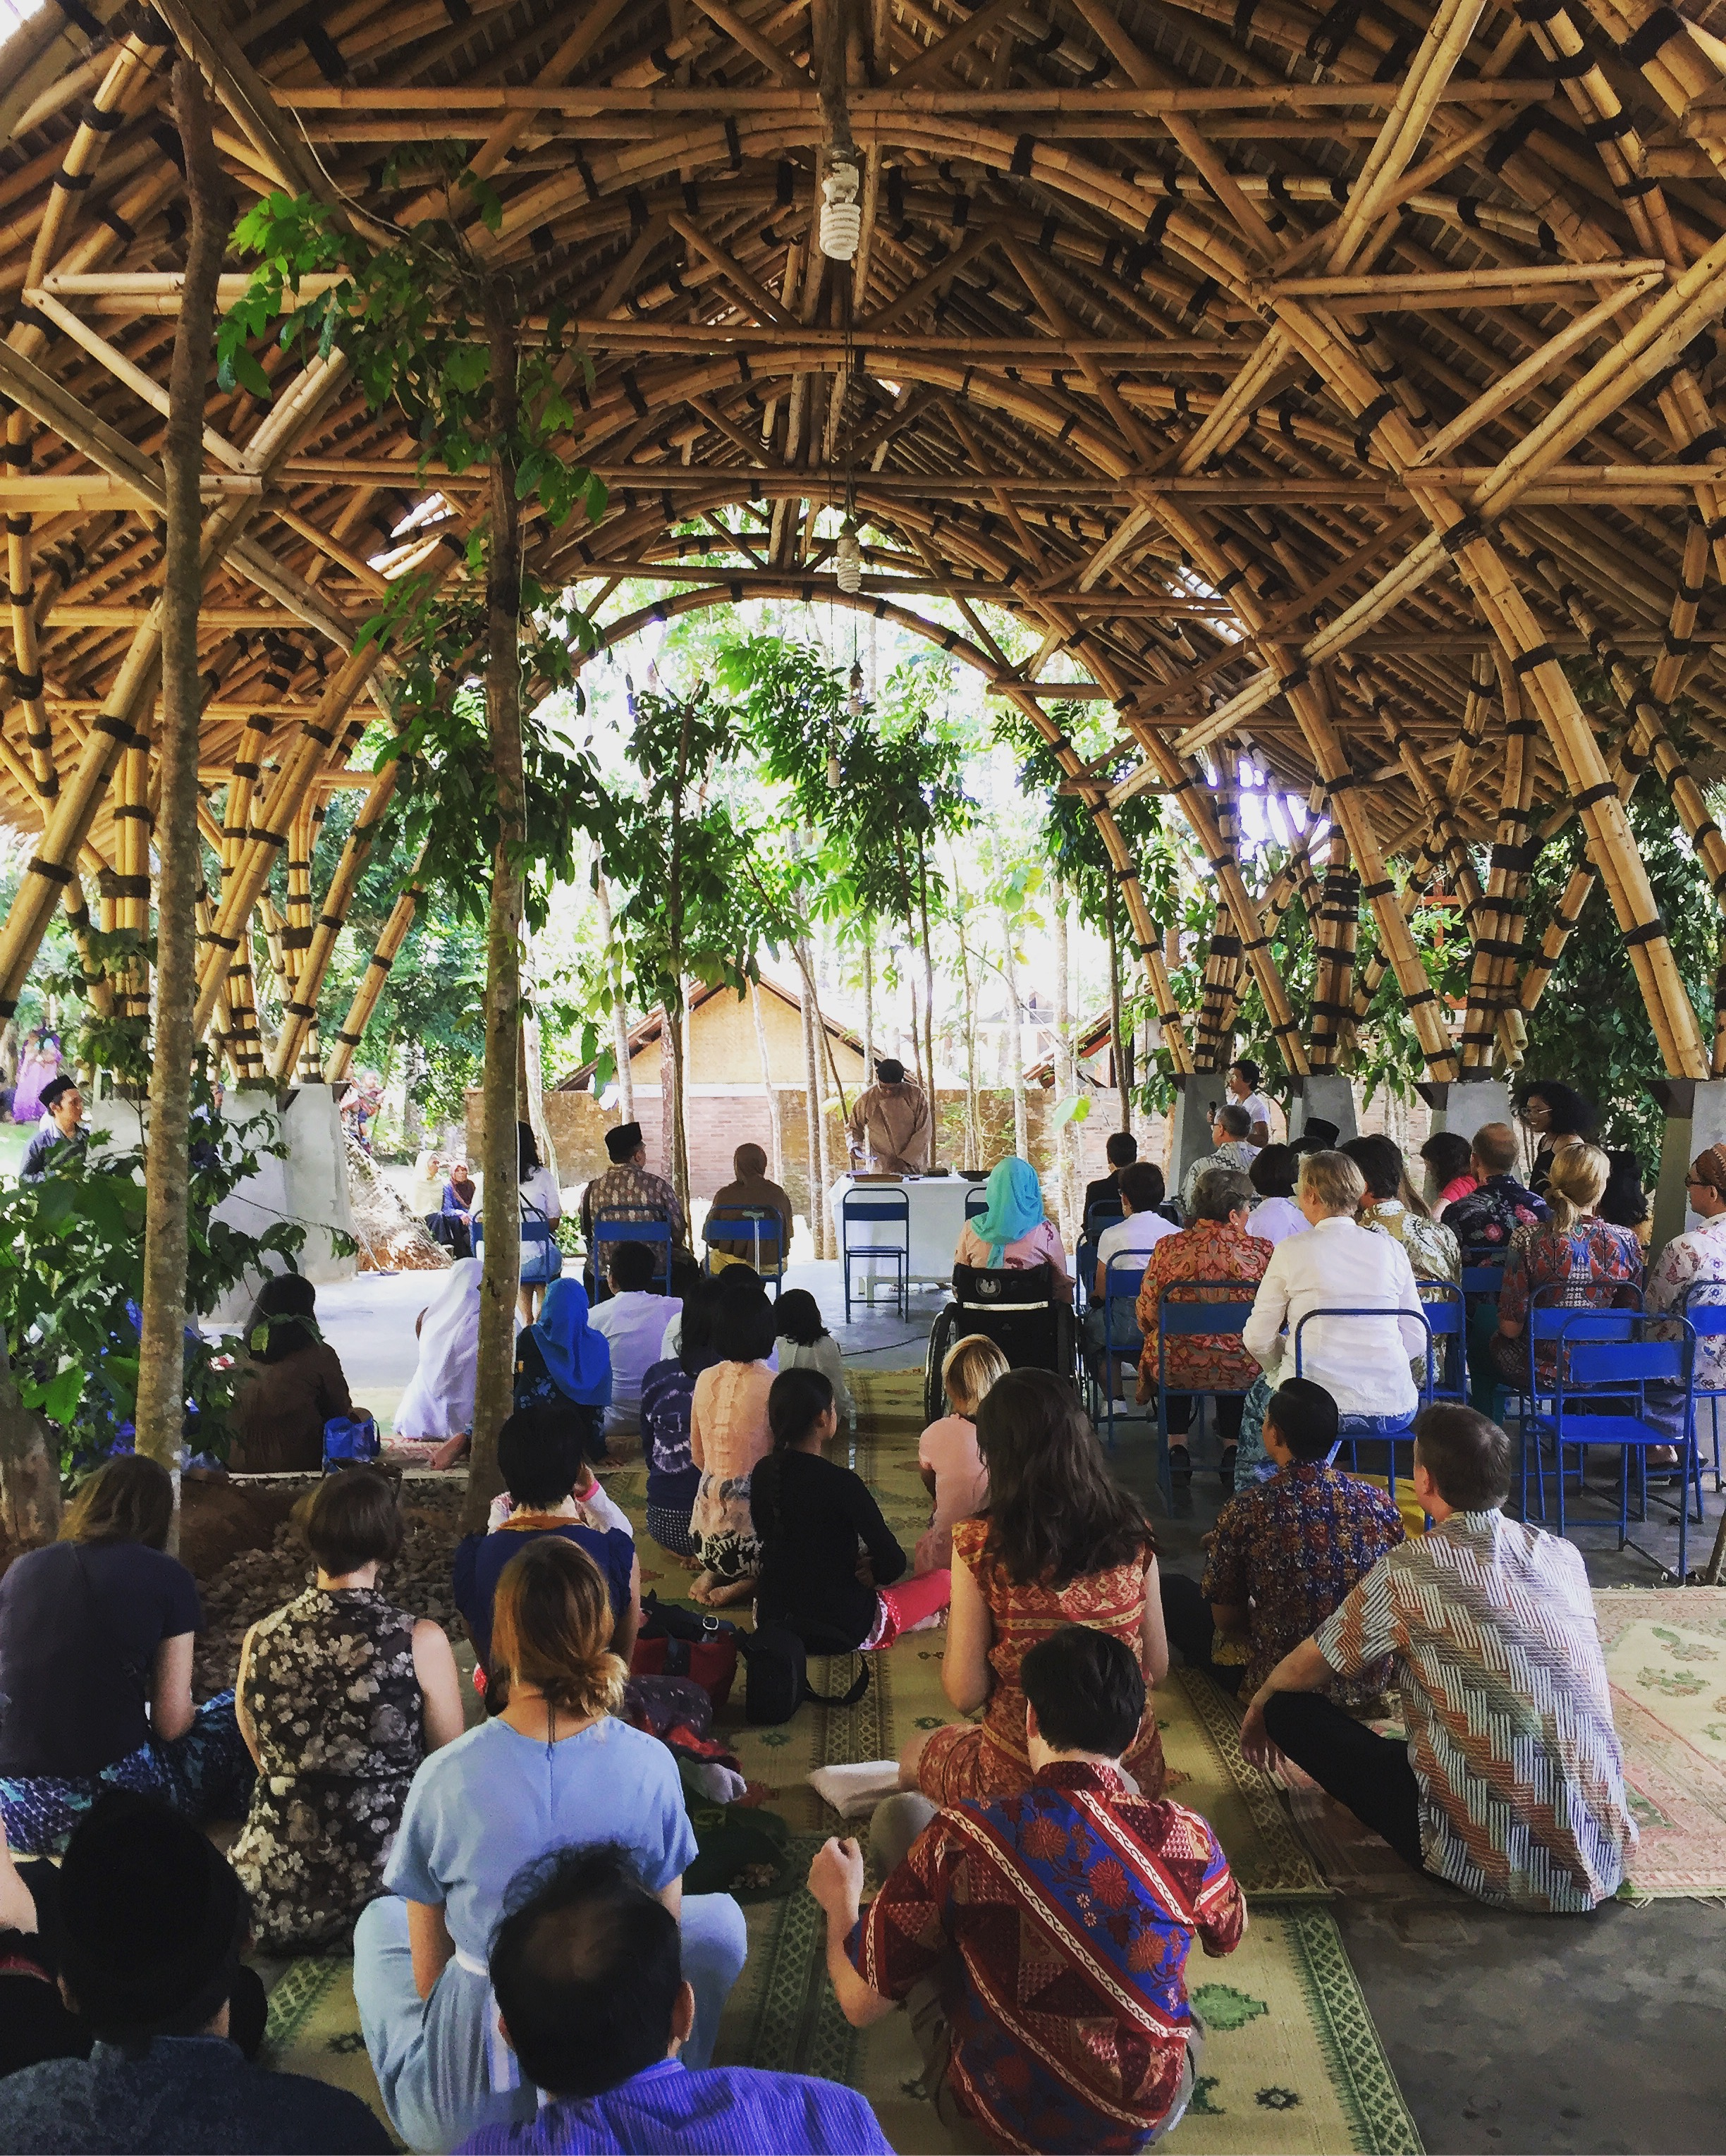 Innovative bamboo structure at the Bumi Pemuda Rahayu initiative outside Yogjakarta